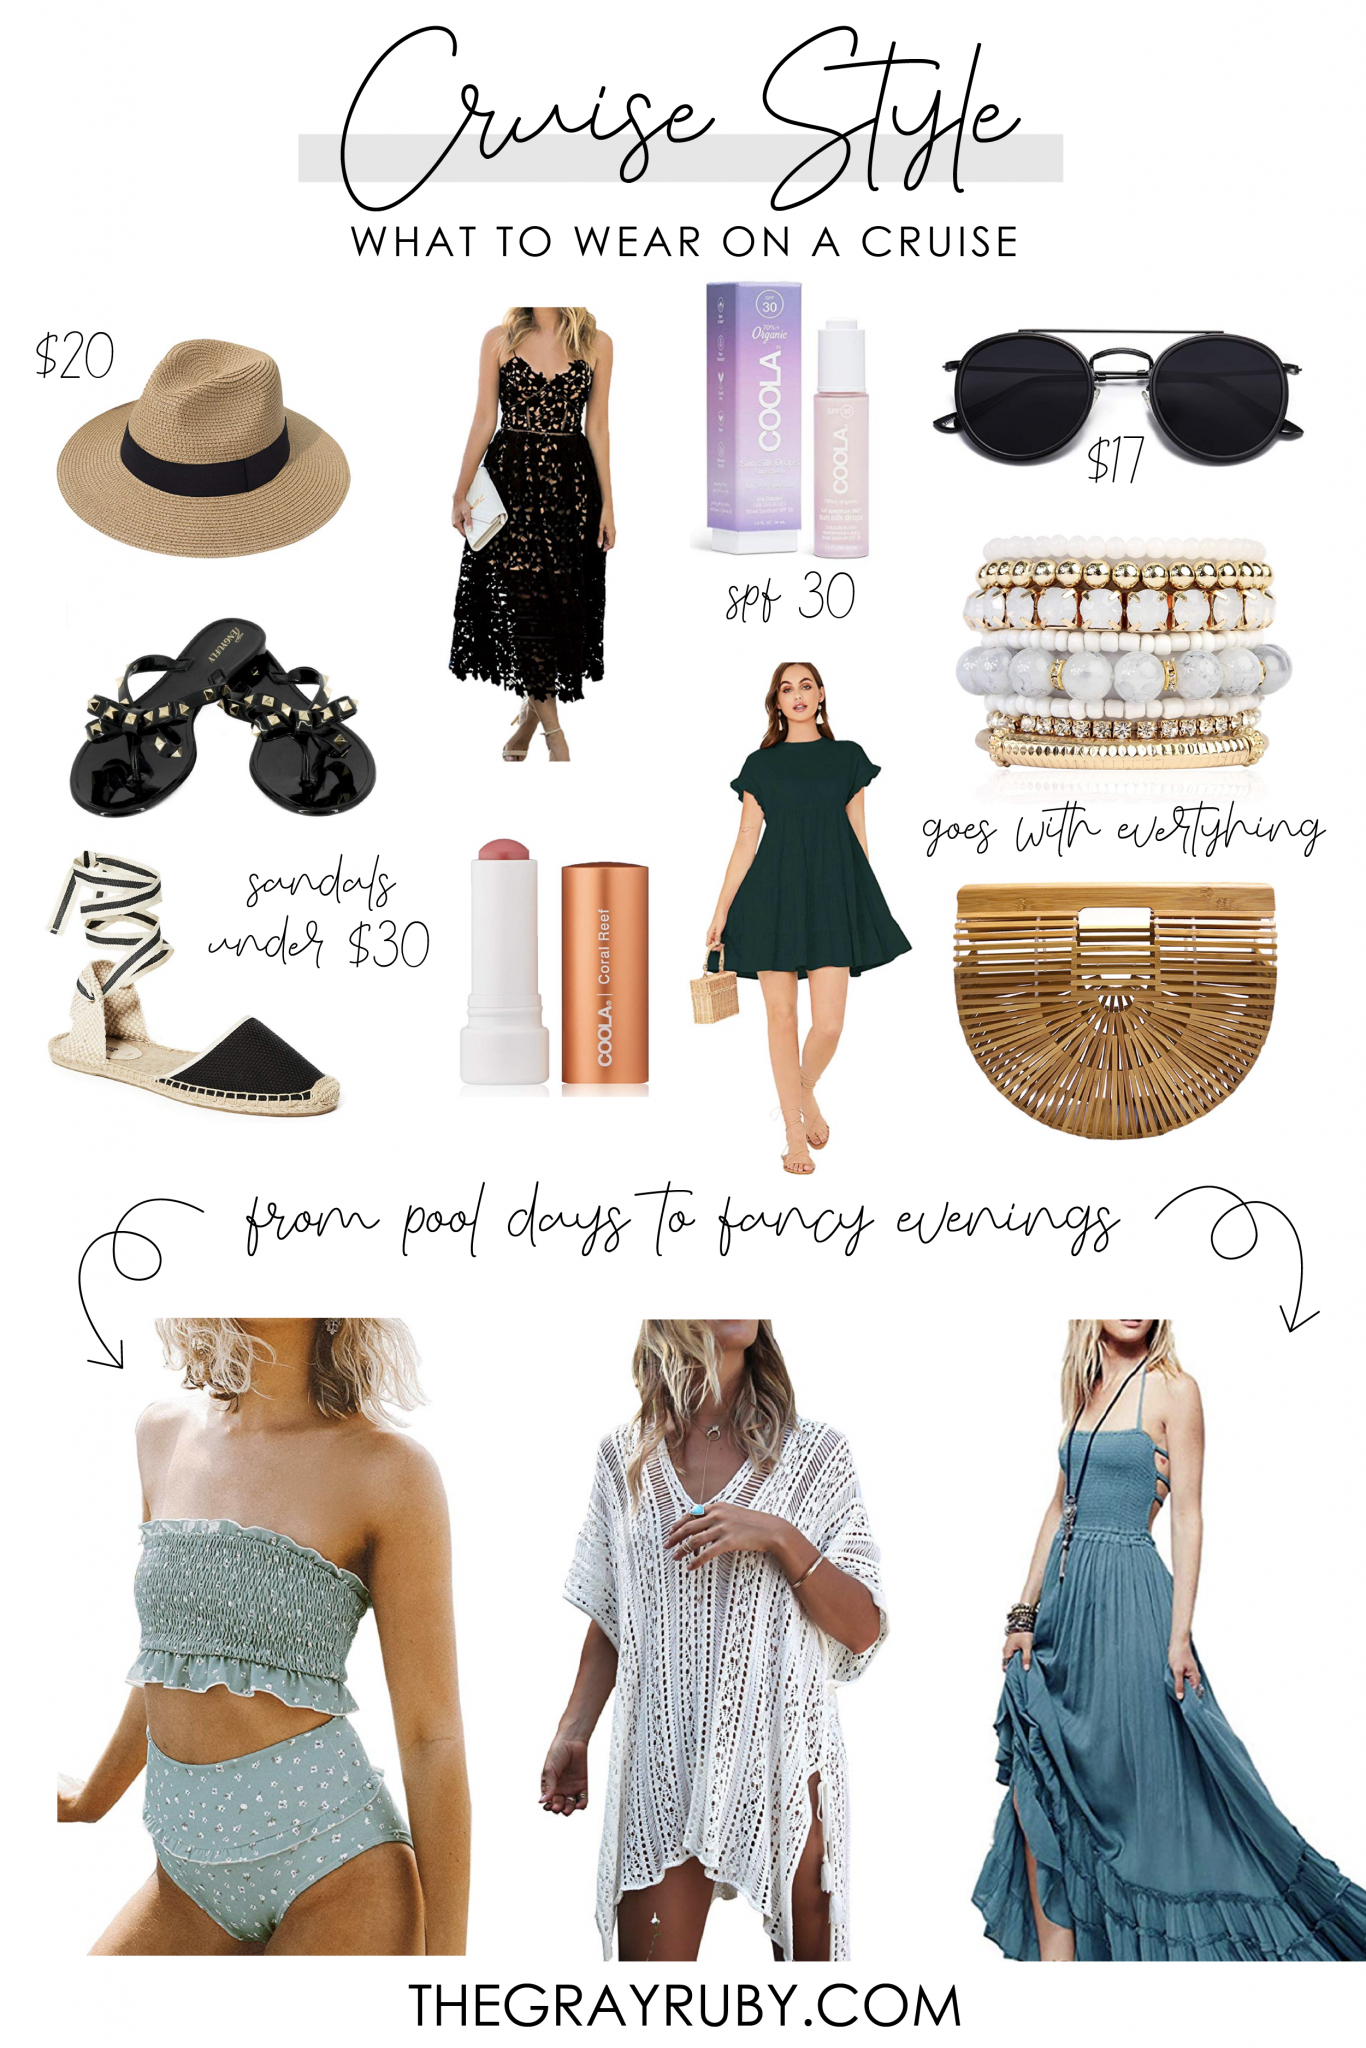 Cruise style - what to wear on a cruise